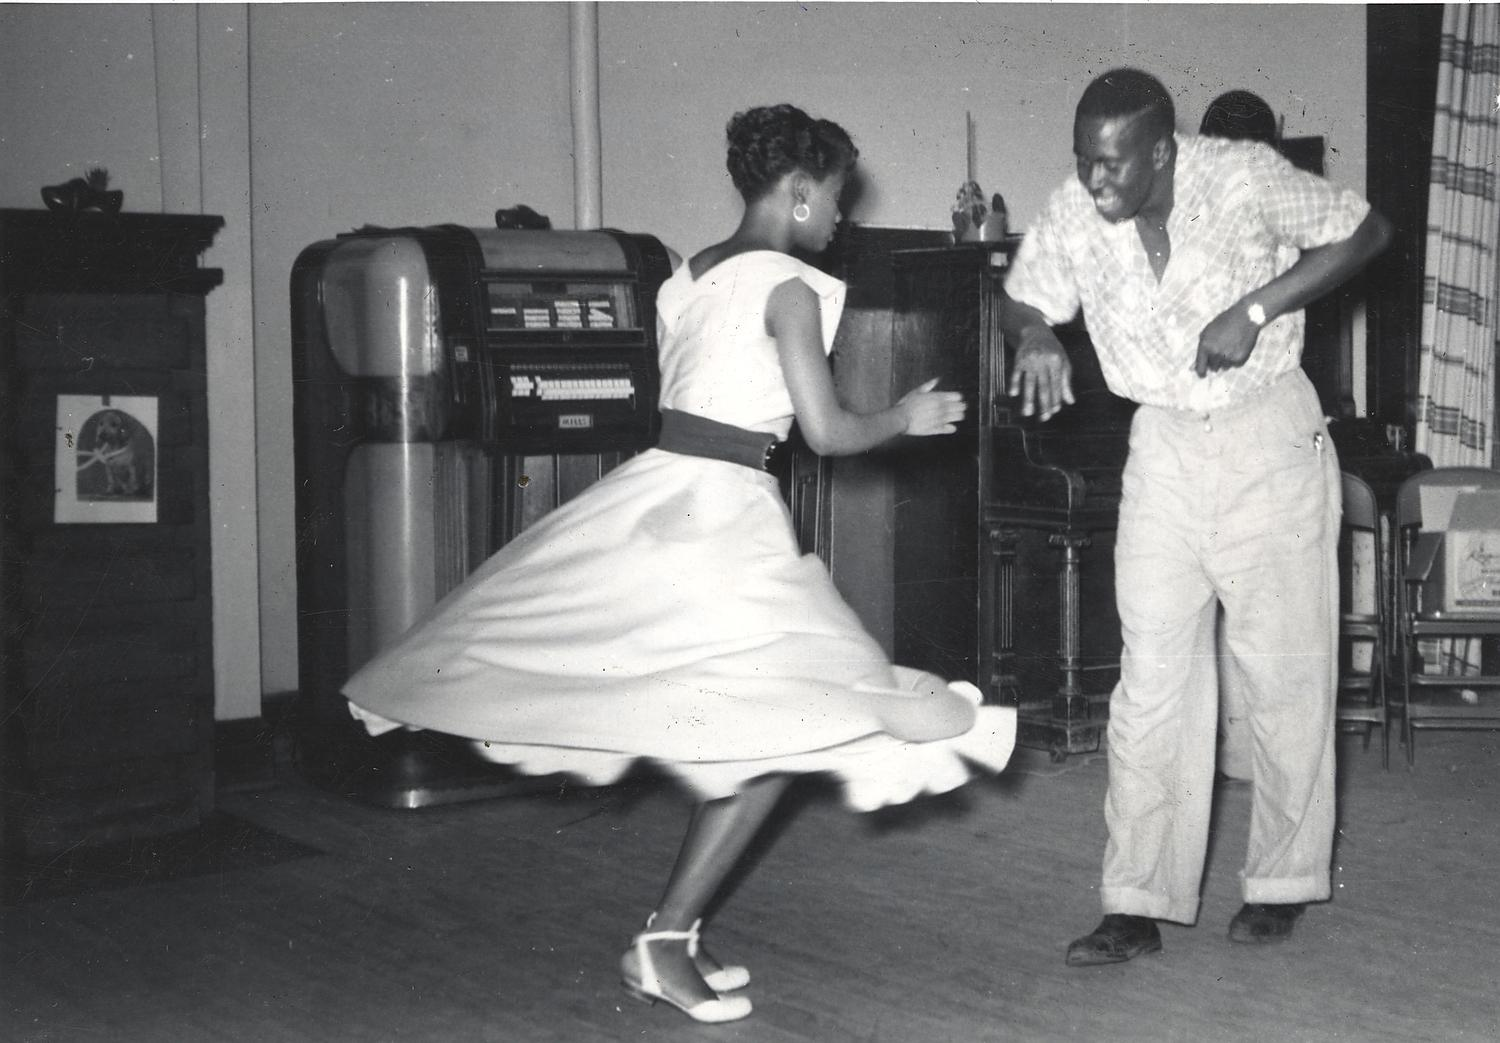 One African American couple dancing in front of jukebox